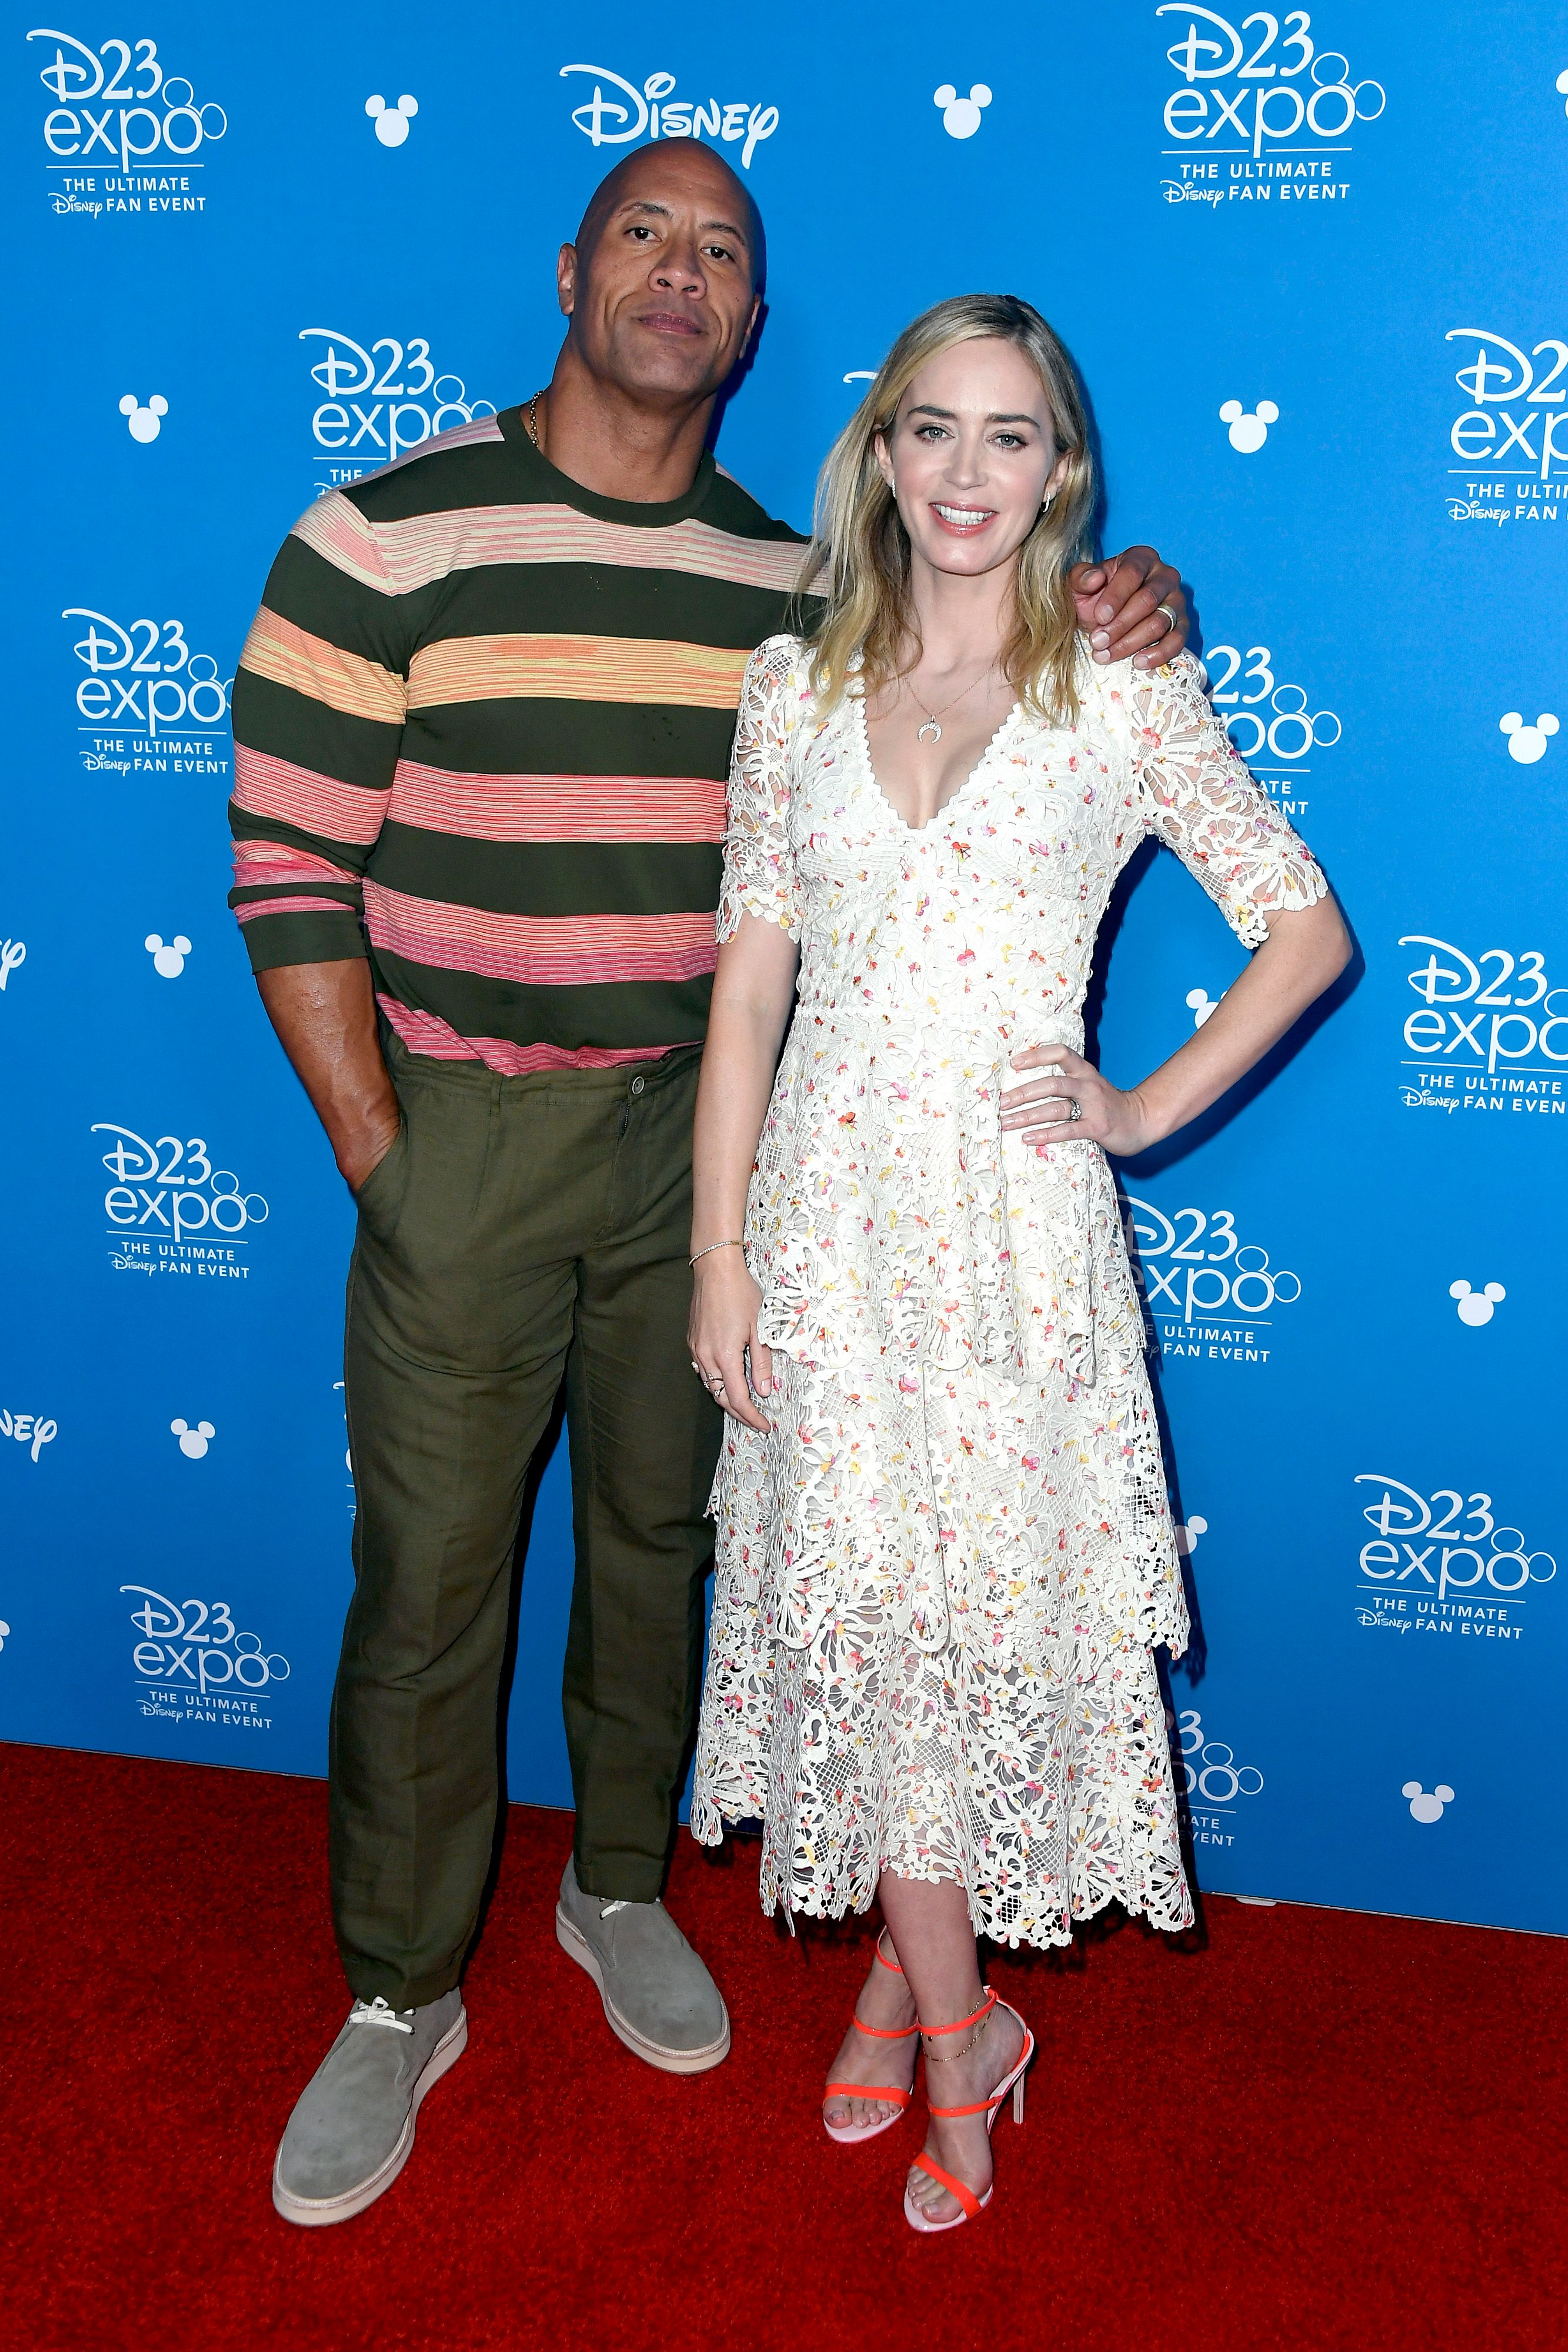 Dwayne 'The Rock' Johnson stands in a striped shirt with Emily Blunt in a white dress with flowers.